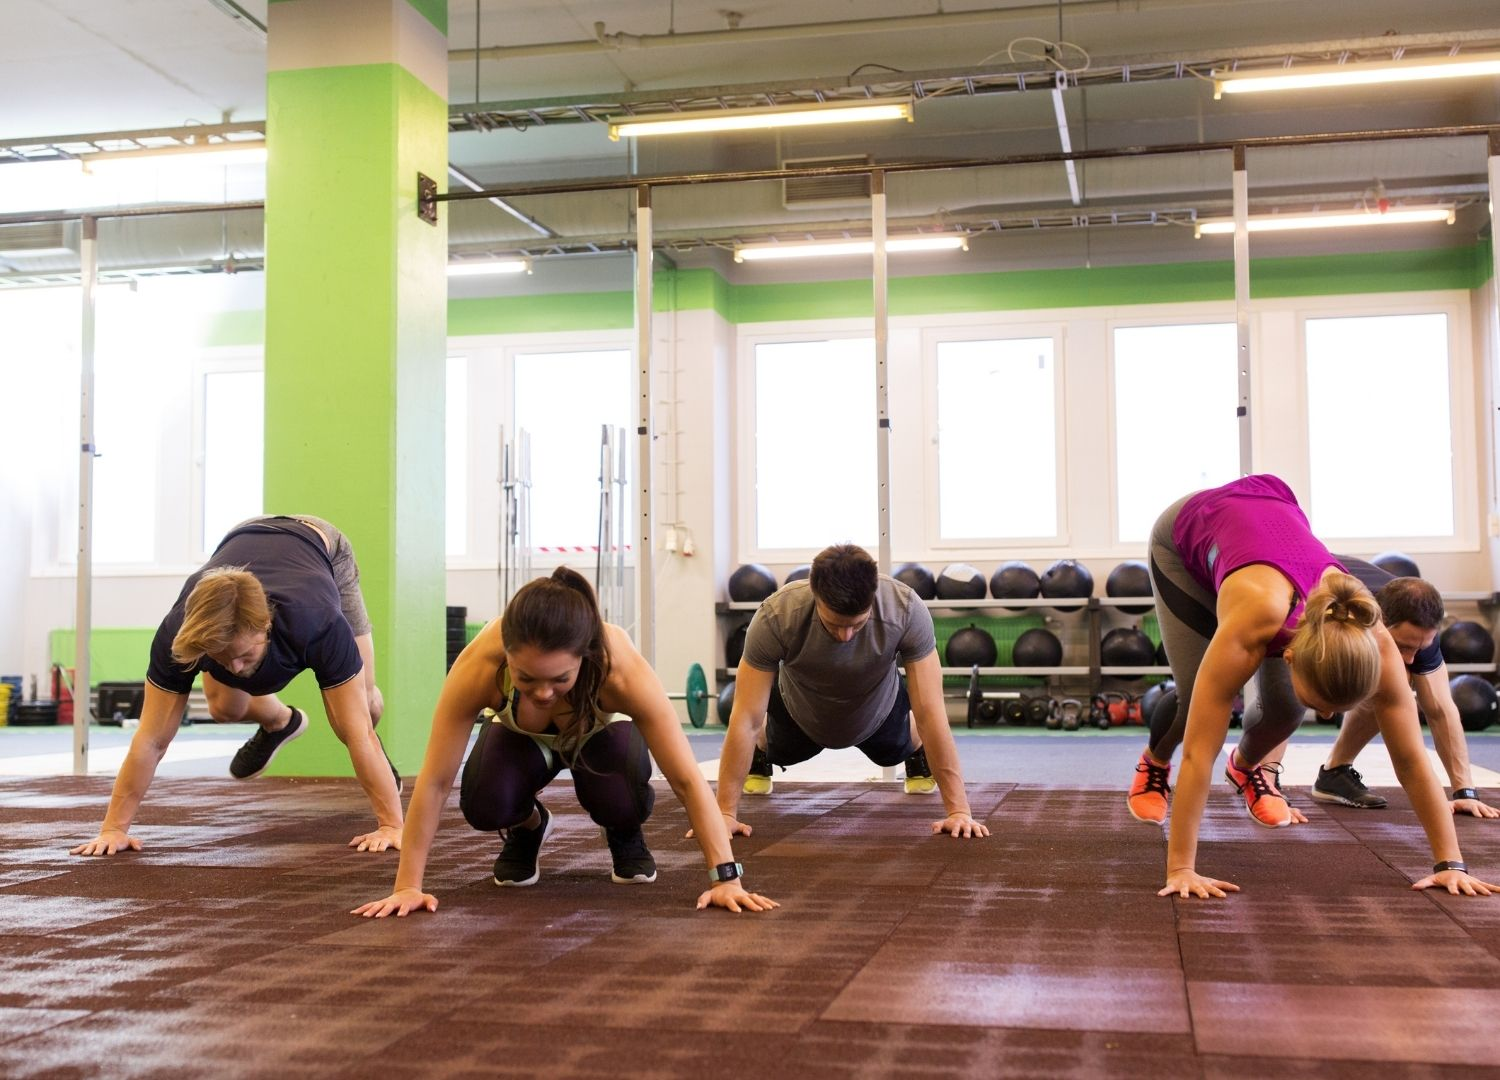 Group of people participating in 1-min burpee challenge